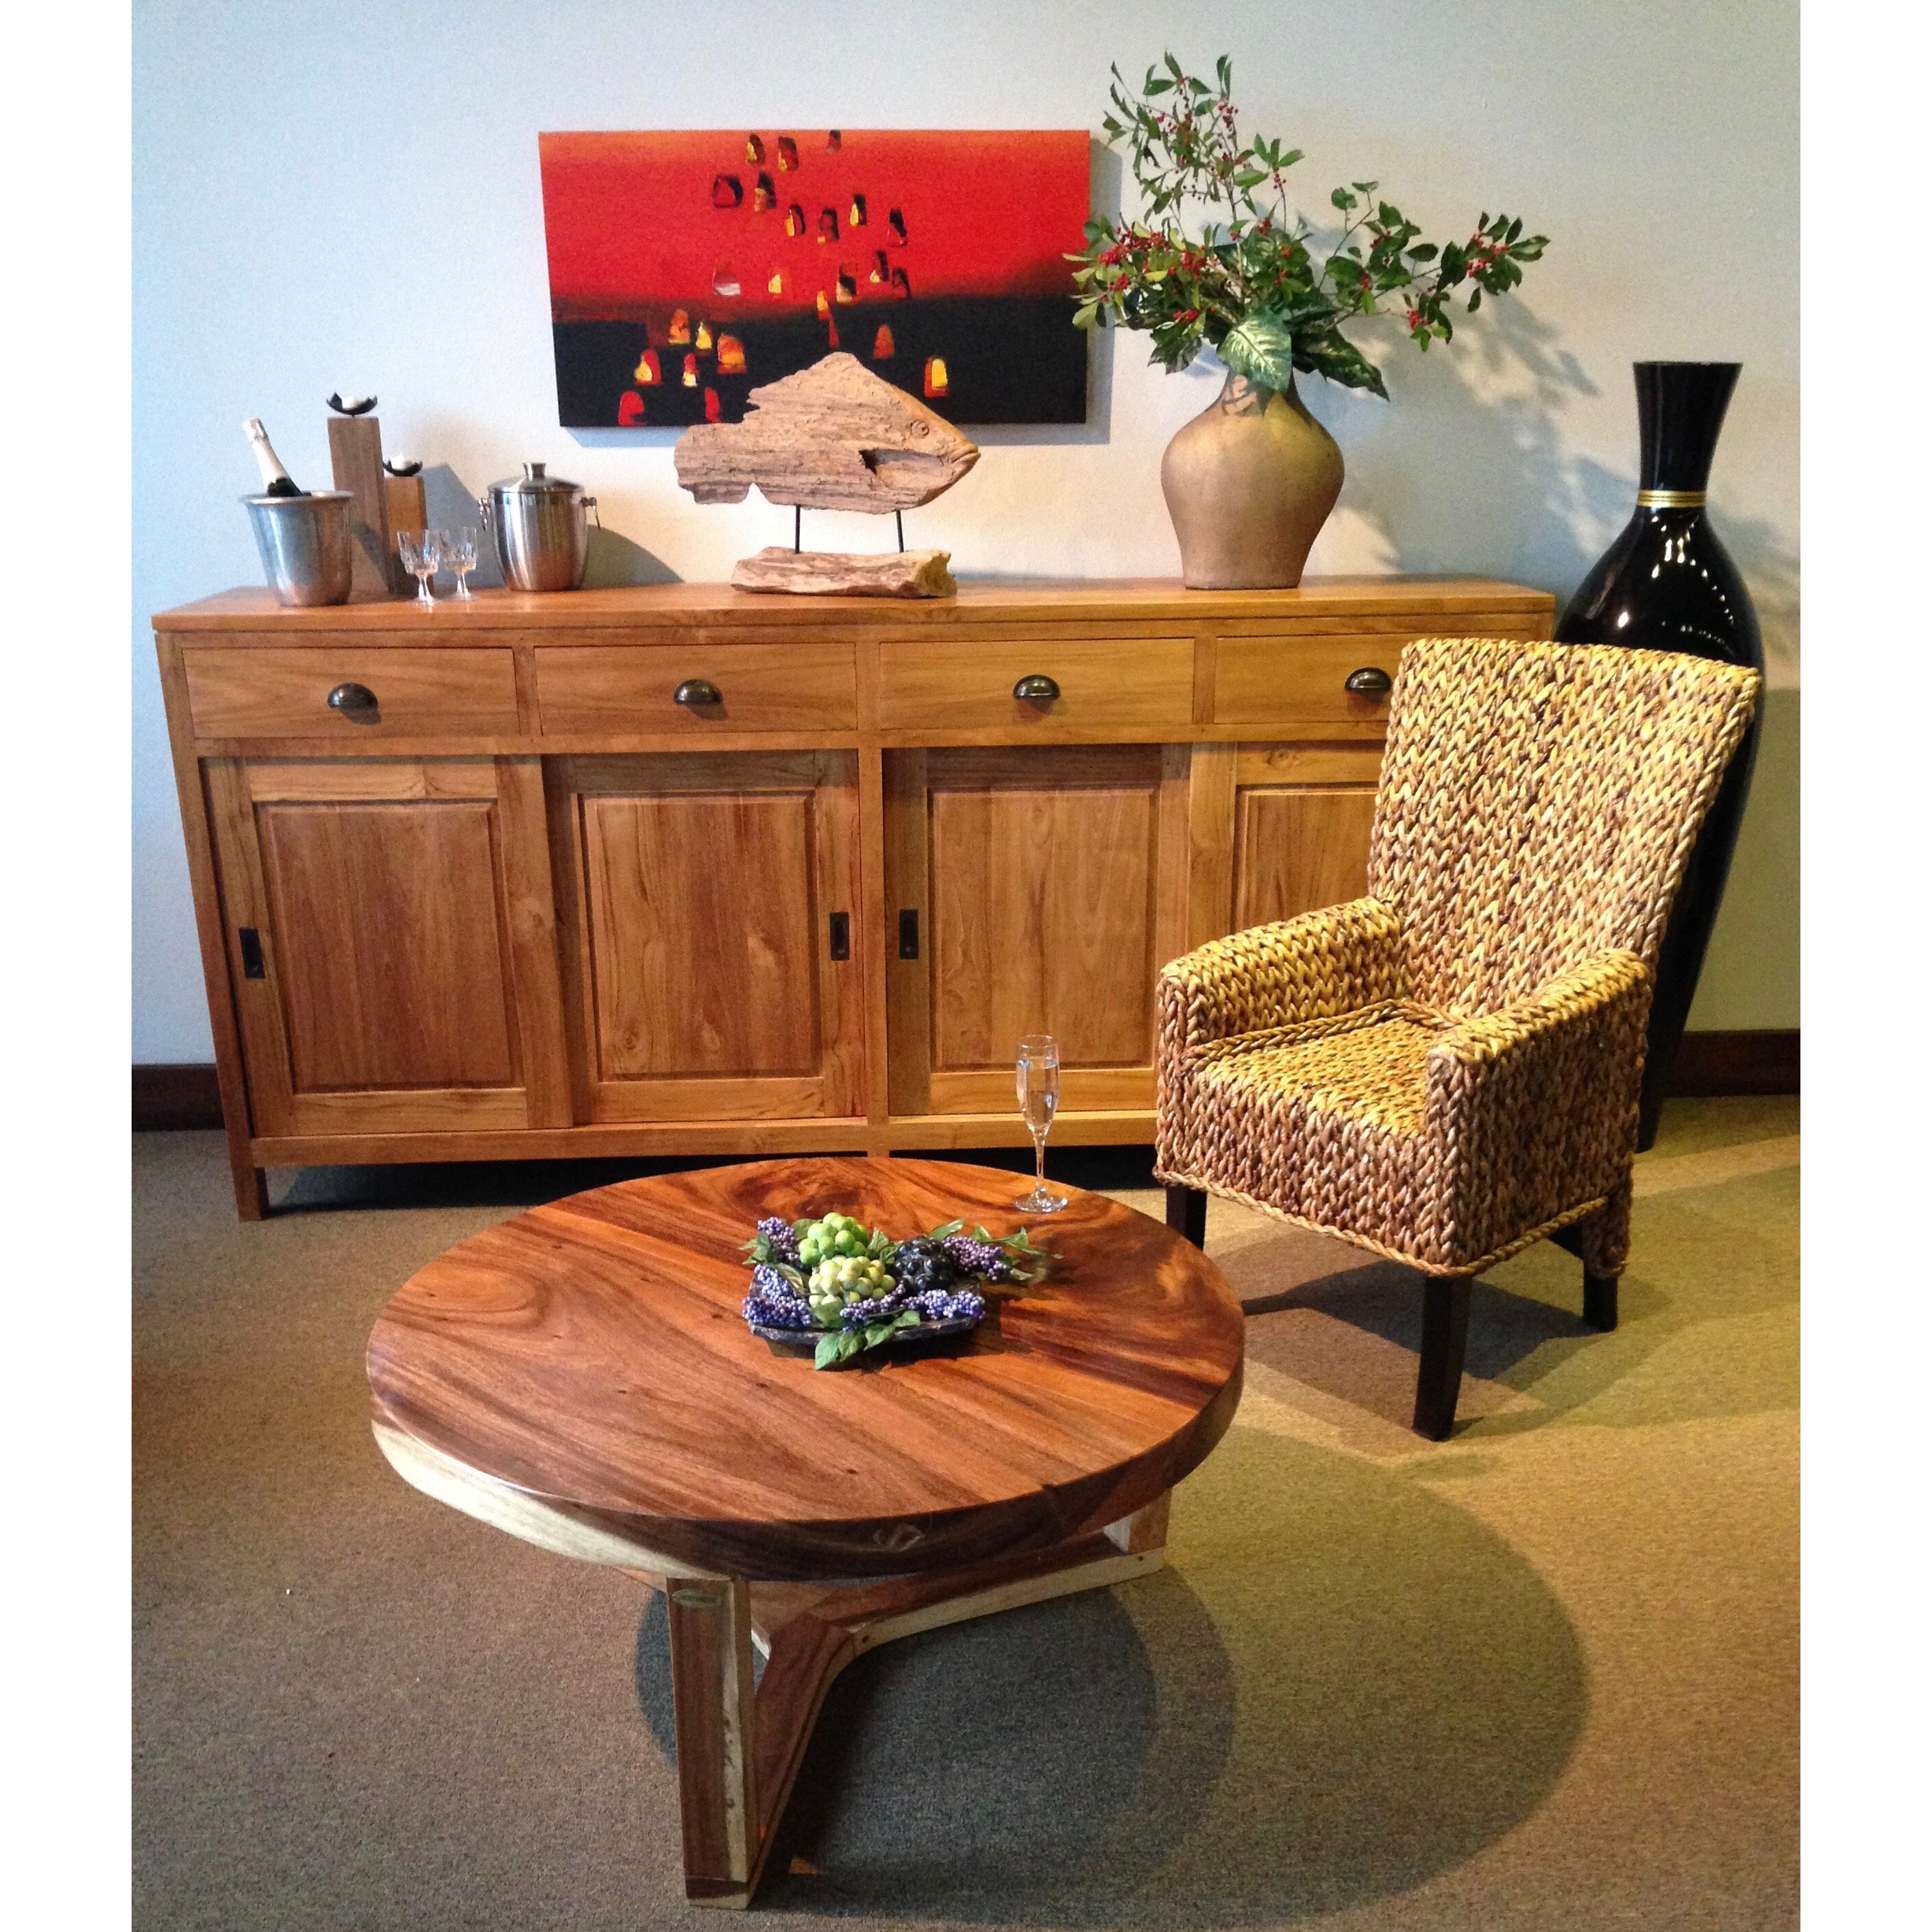 Chic Teak Coffee Table